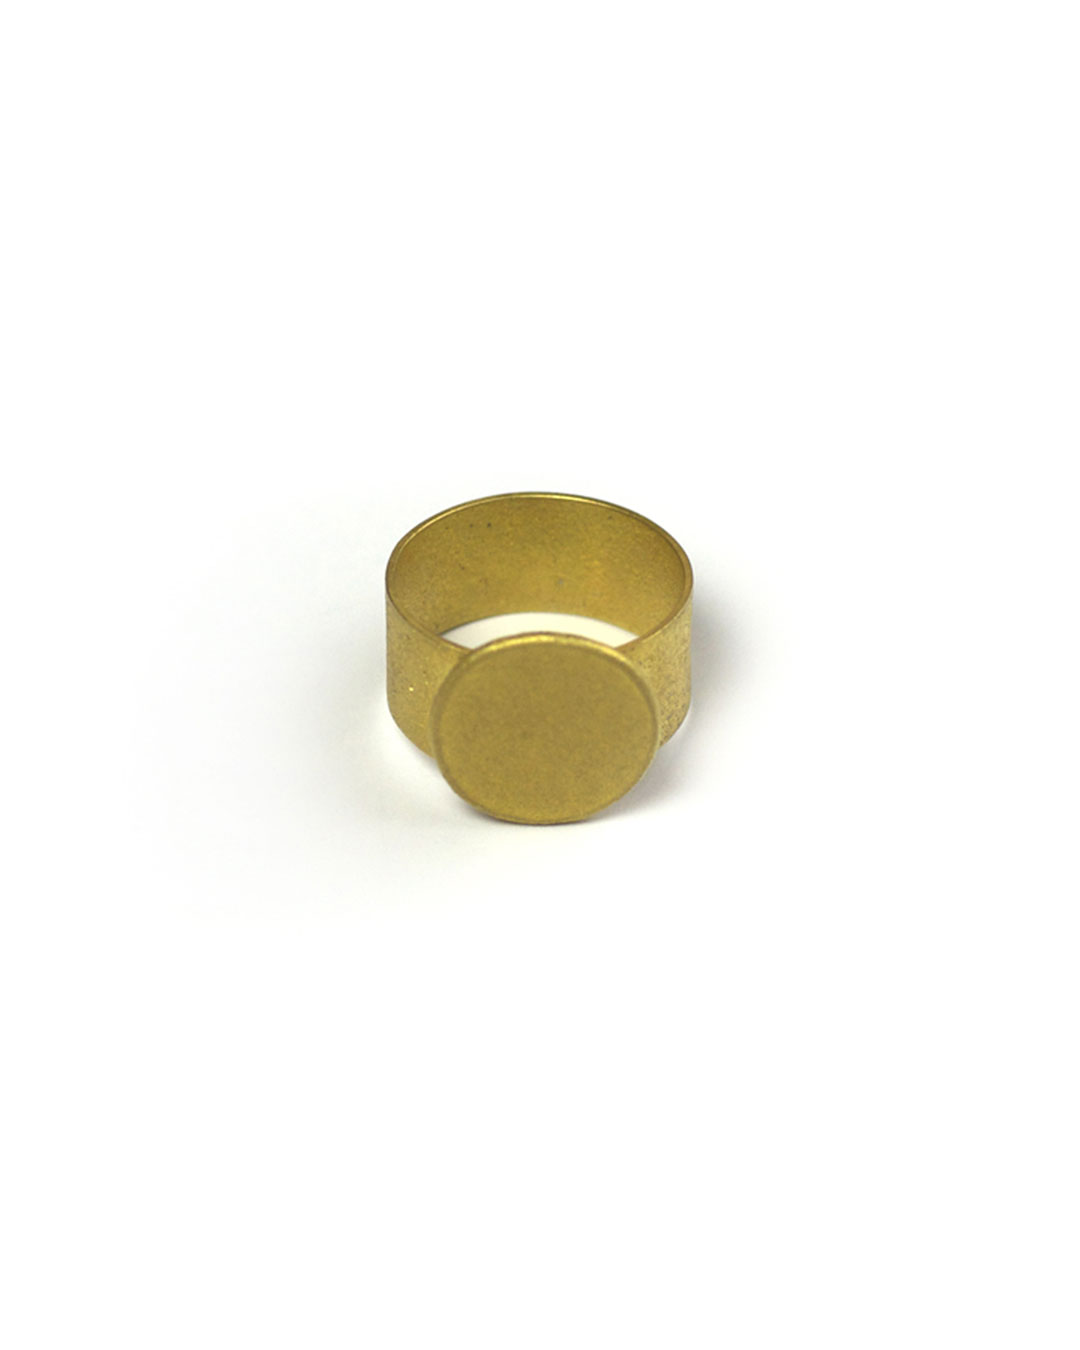 Karin Johansson, untitled, 2010, ring; 18ct gold, 21 x 19 x 19 mm, €2100